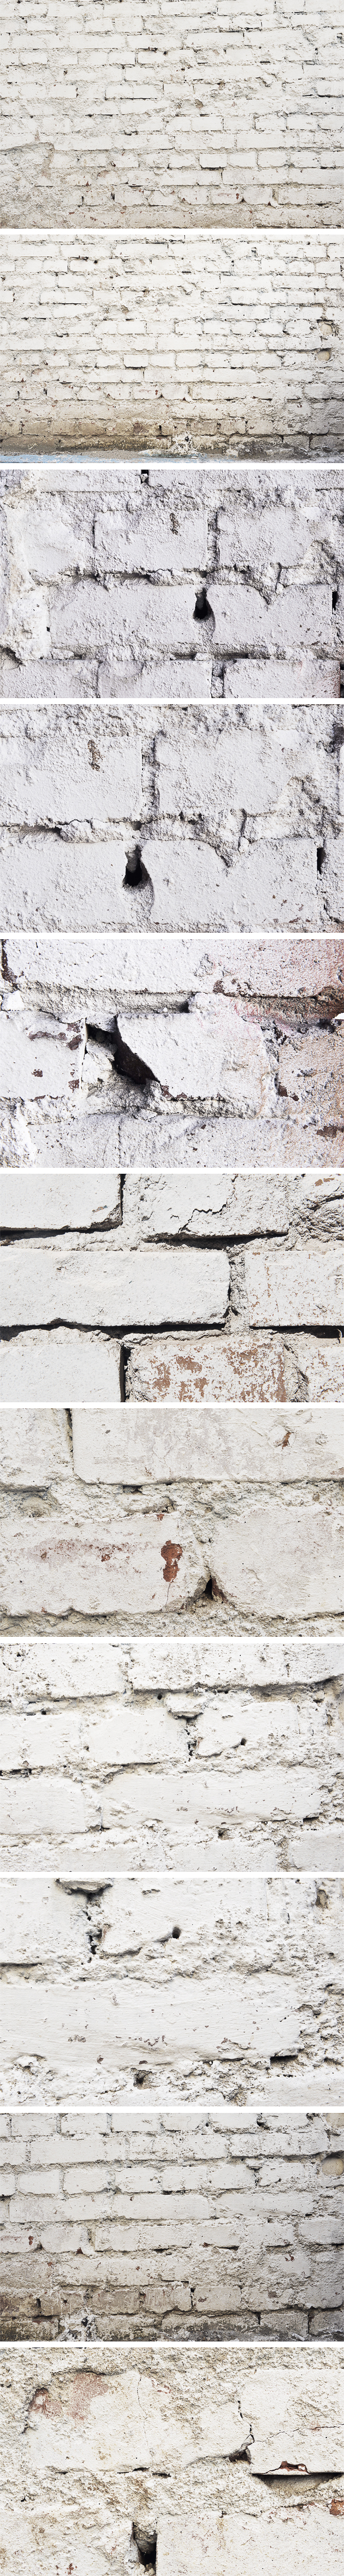 designtnt-textures-white-wall-large